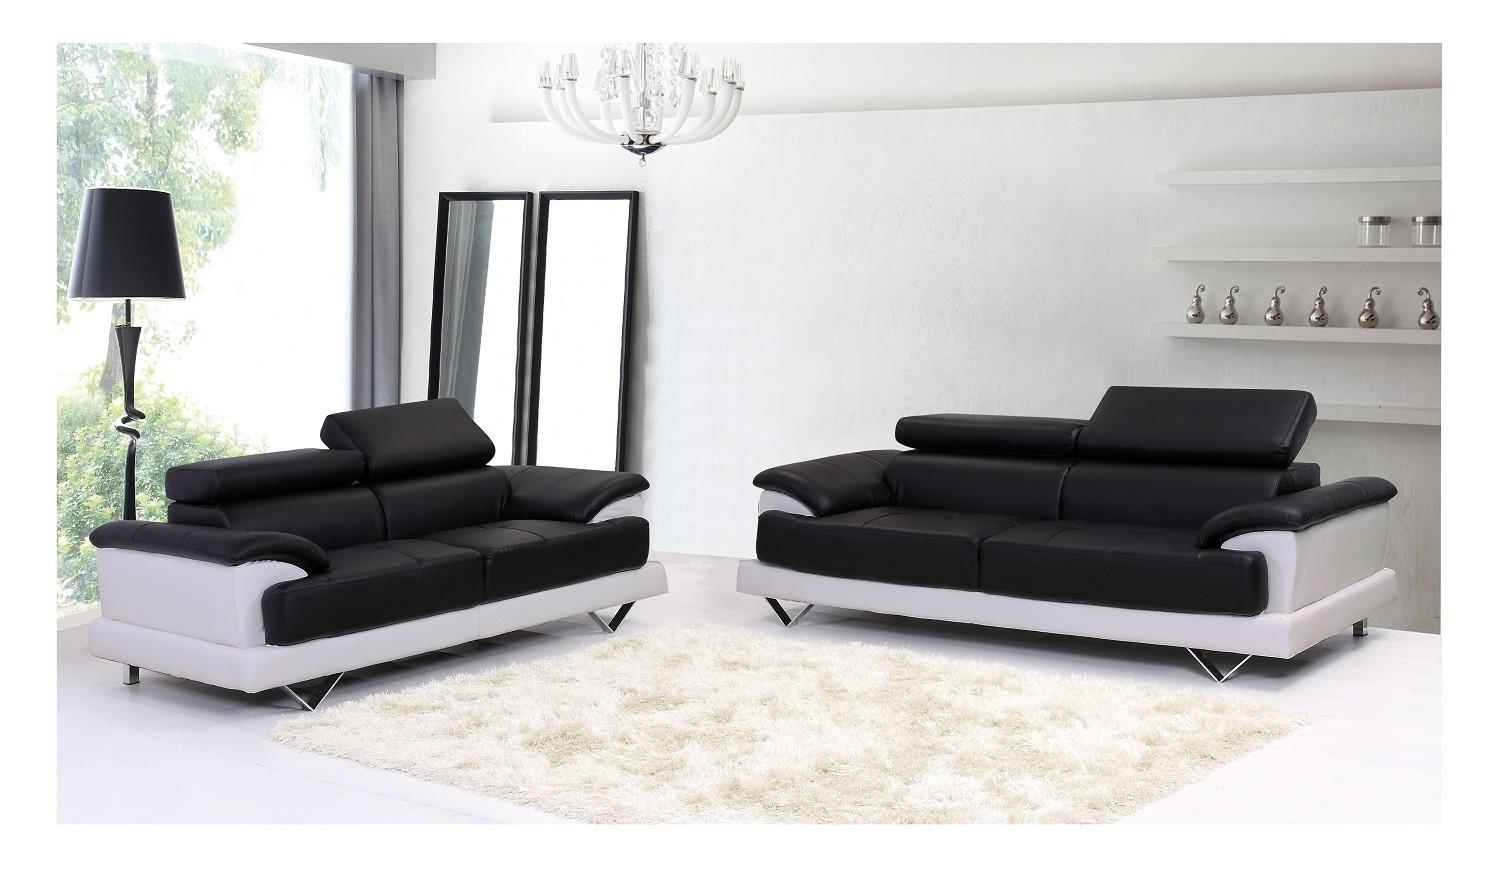 Sofas Center : Leather Sofa Black Modern Tufted Loveseat With Inside Contemporary Black Leather Sofas (Image 18 of 20)